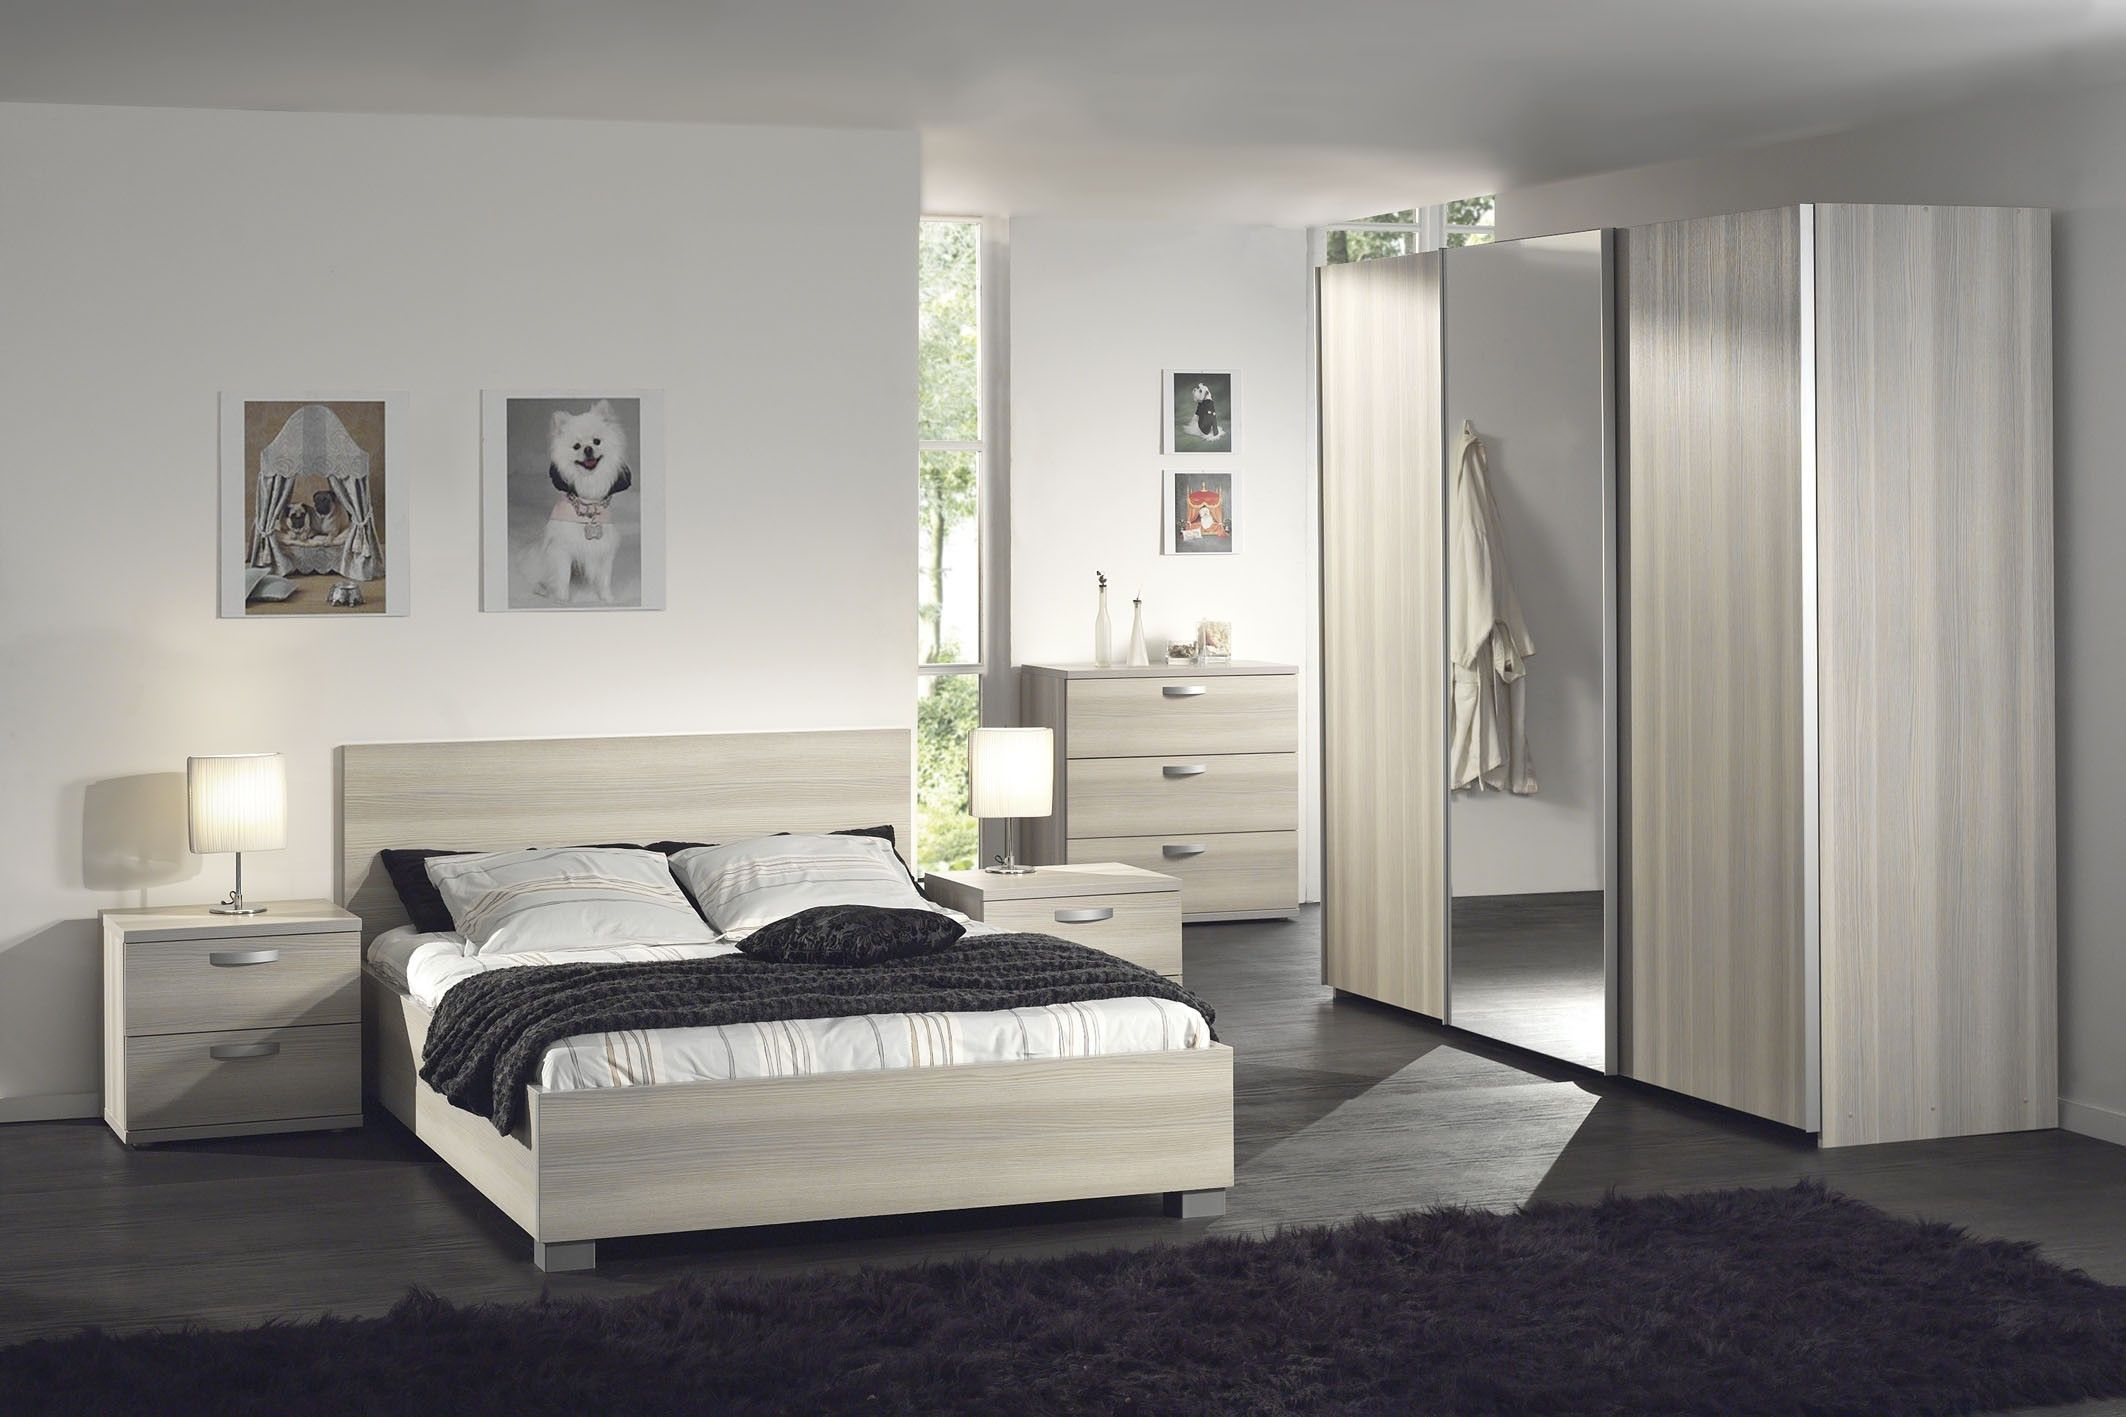 Chambre à Coucher Wiemann Pin By Rettya On Home Decor Pinterest